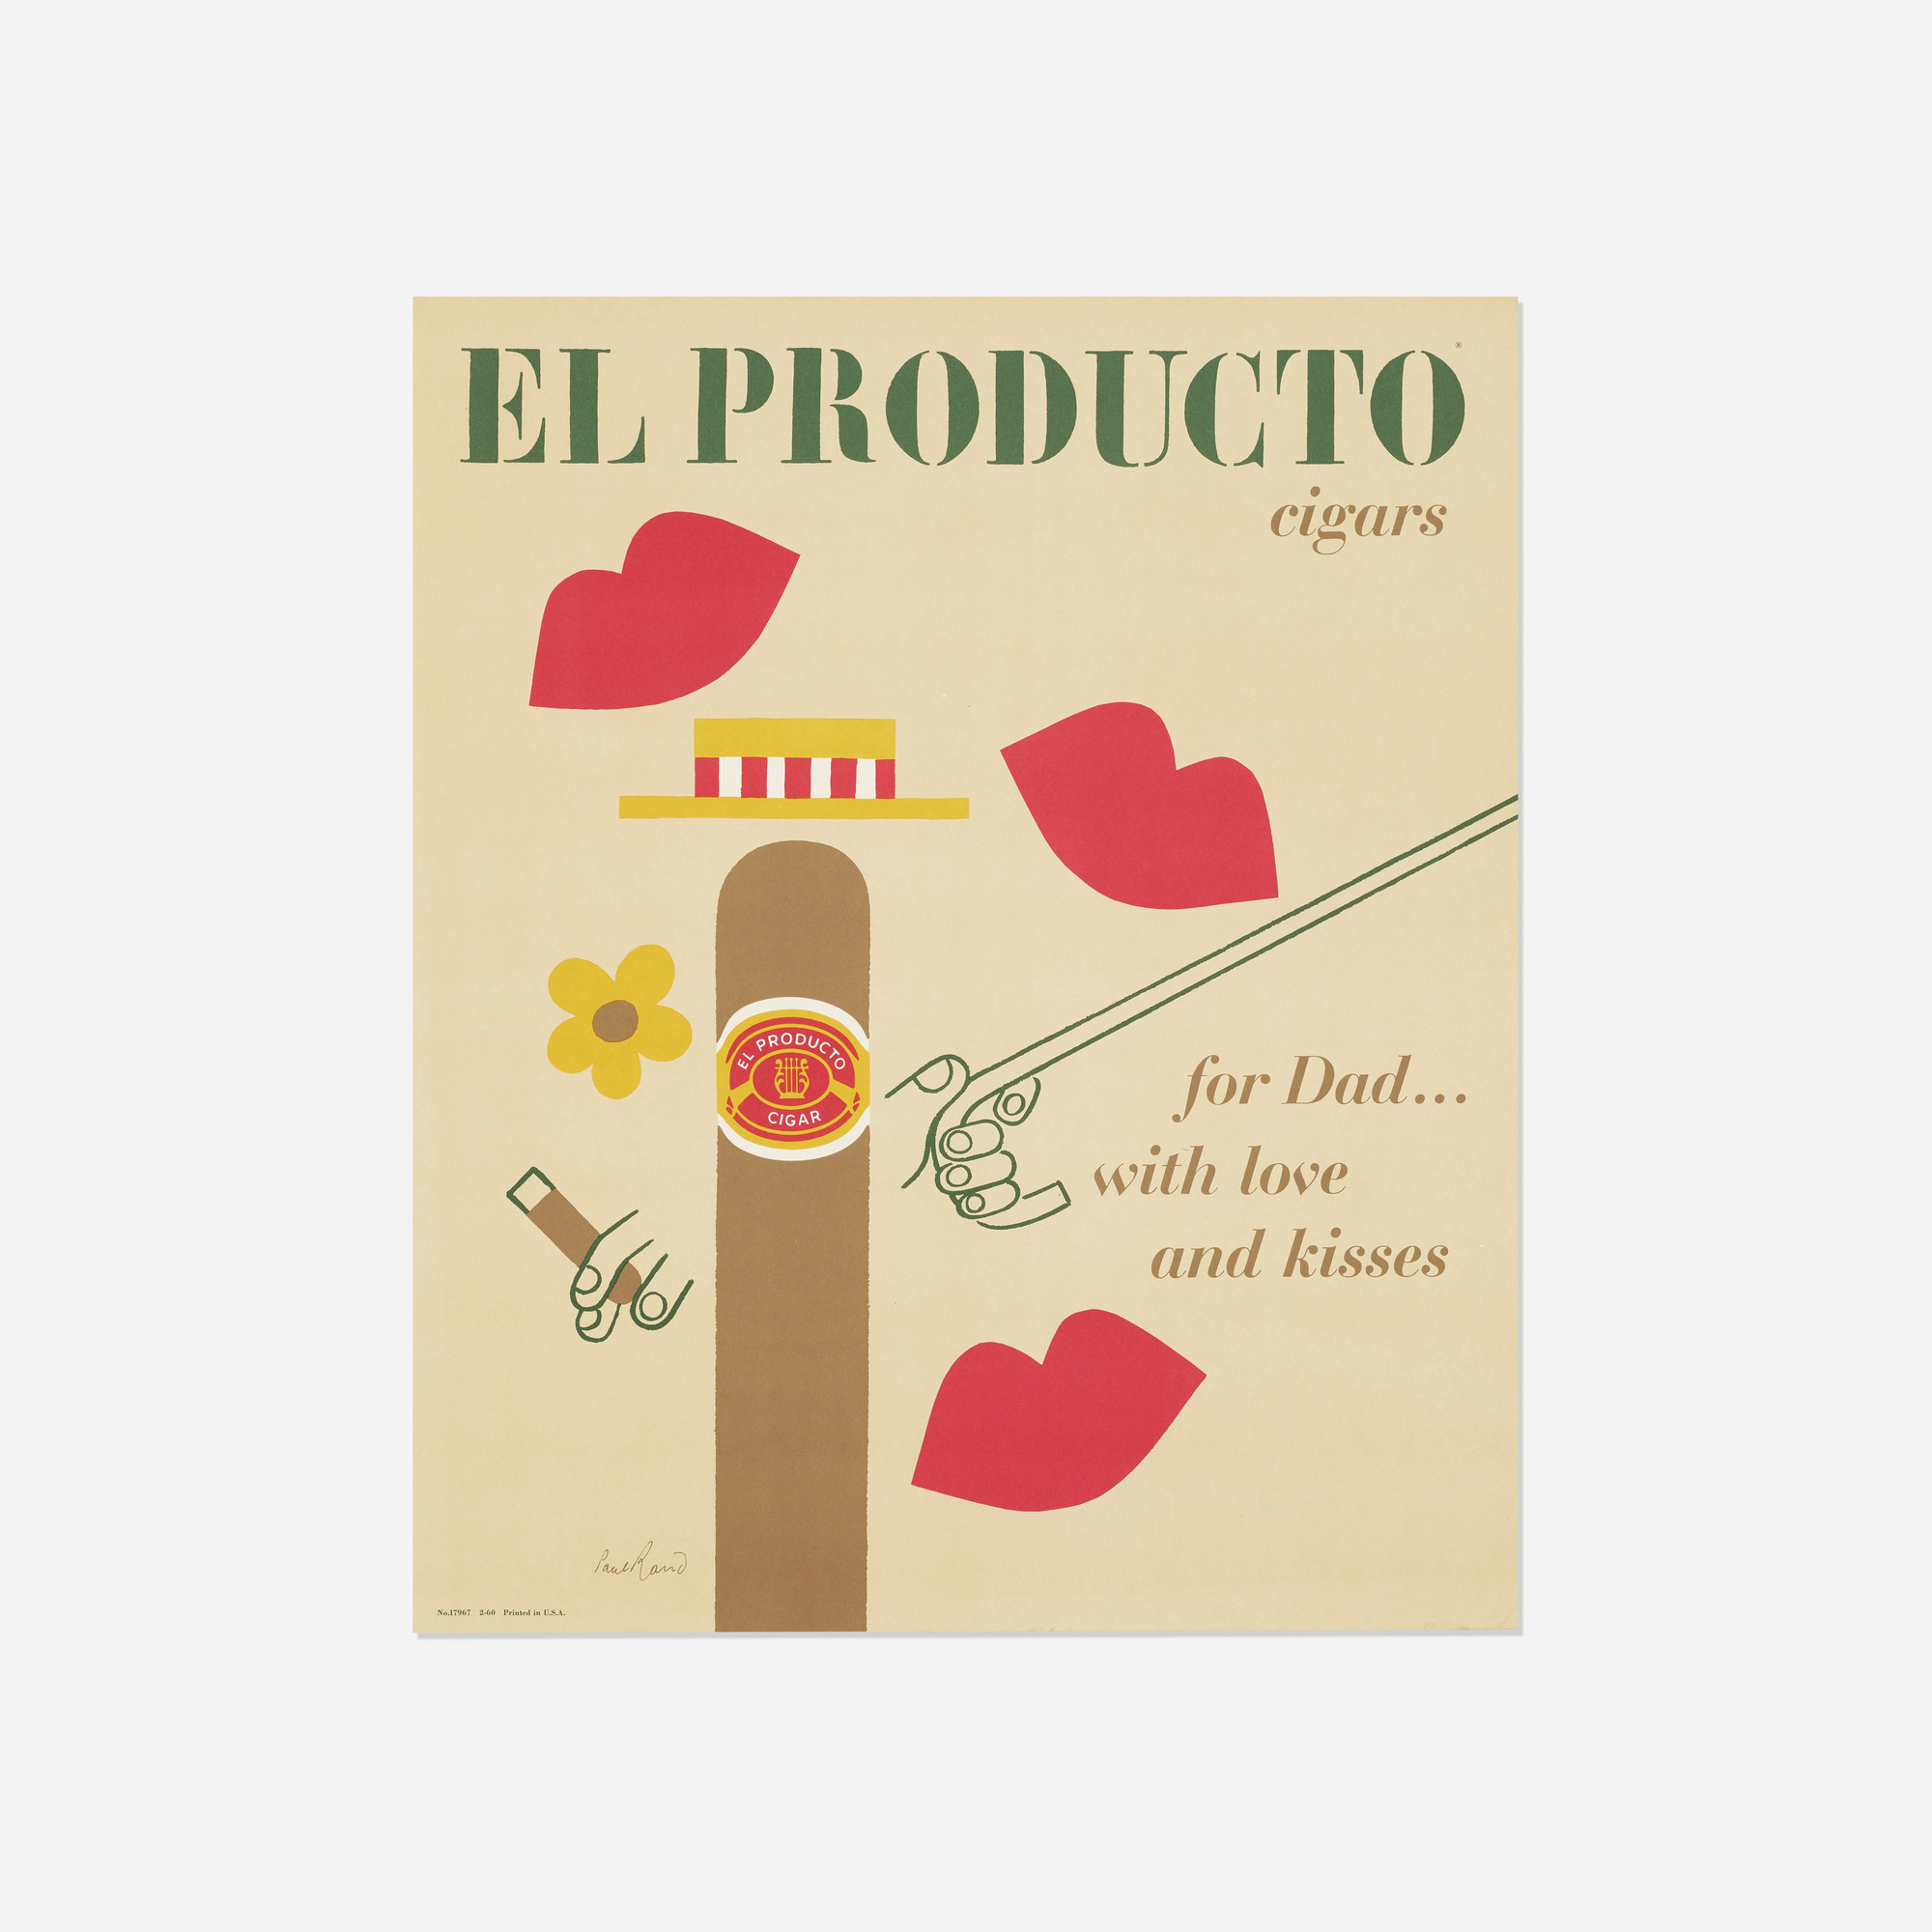 Image result for El producto paul rand